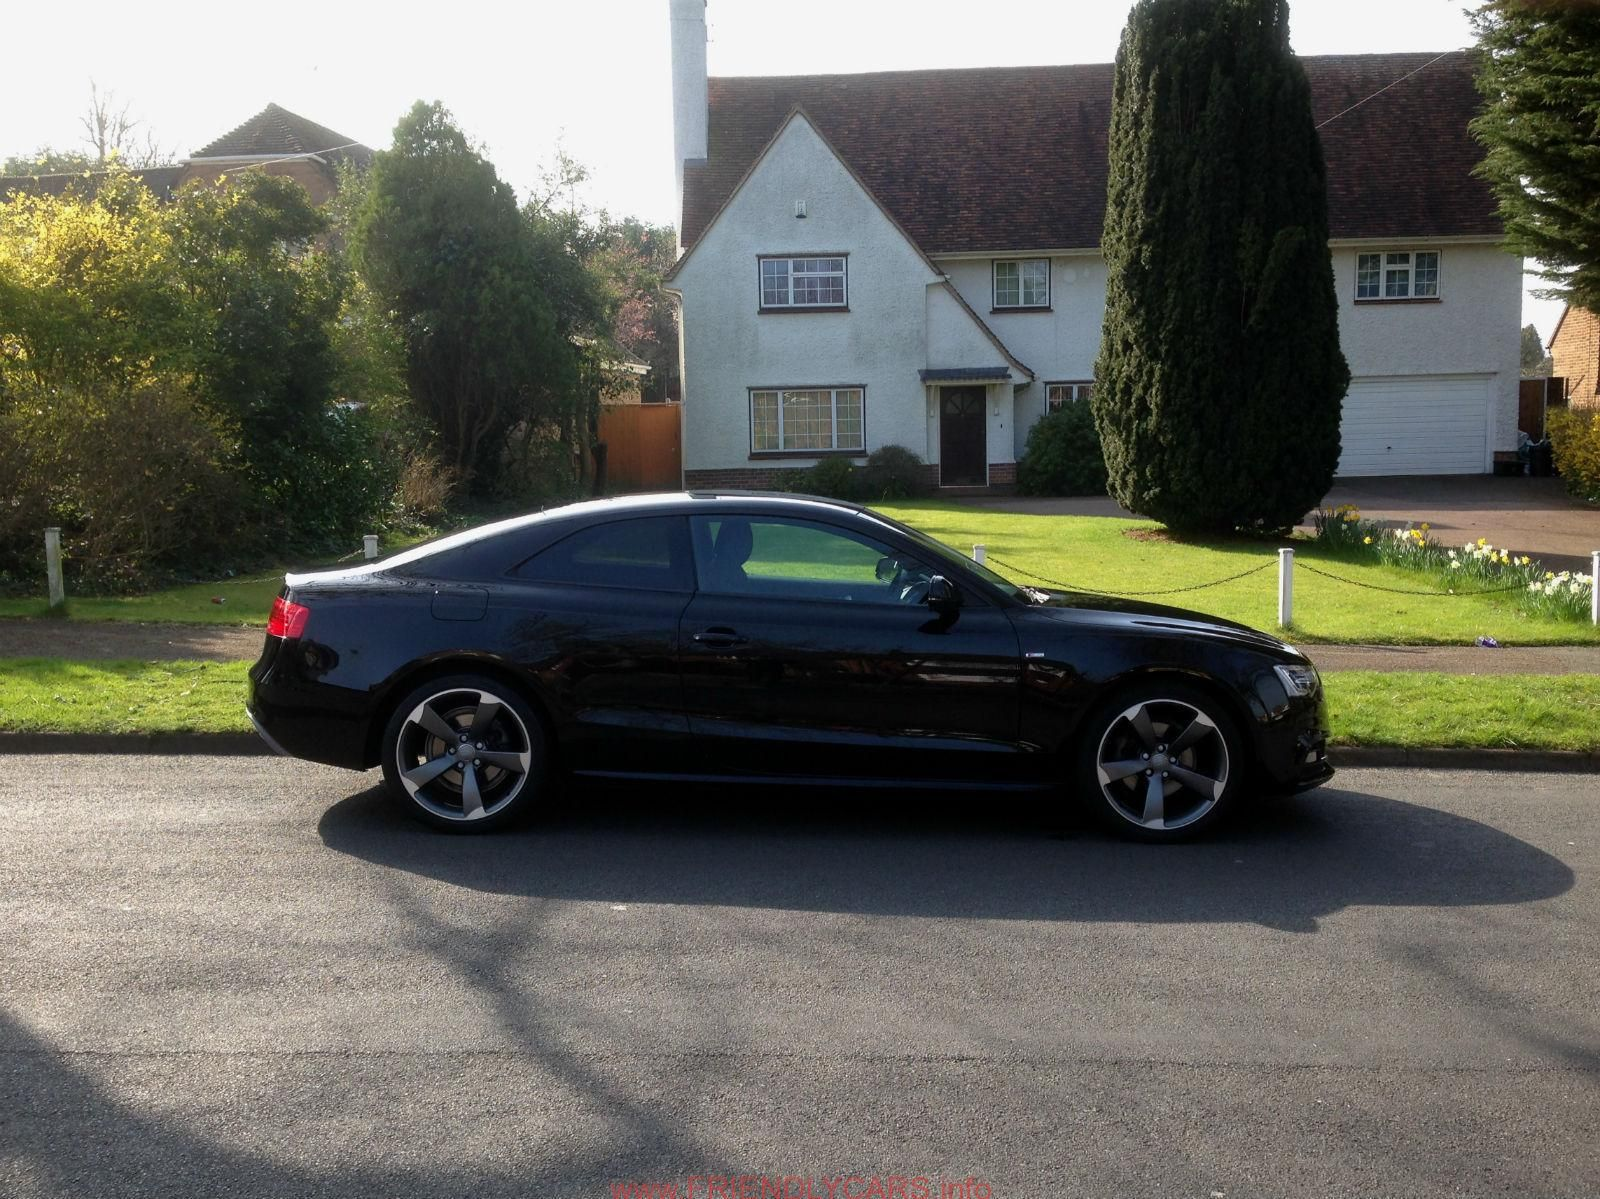 Awesome Audi A5 Coupe Black Edition Car Images Hd Audi A5 Reg 2012